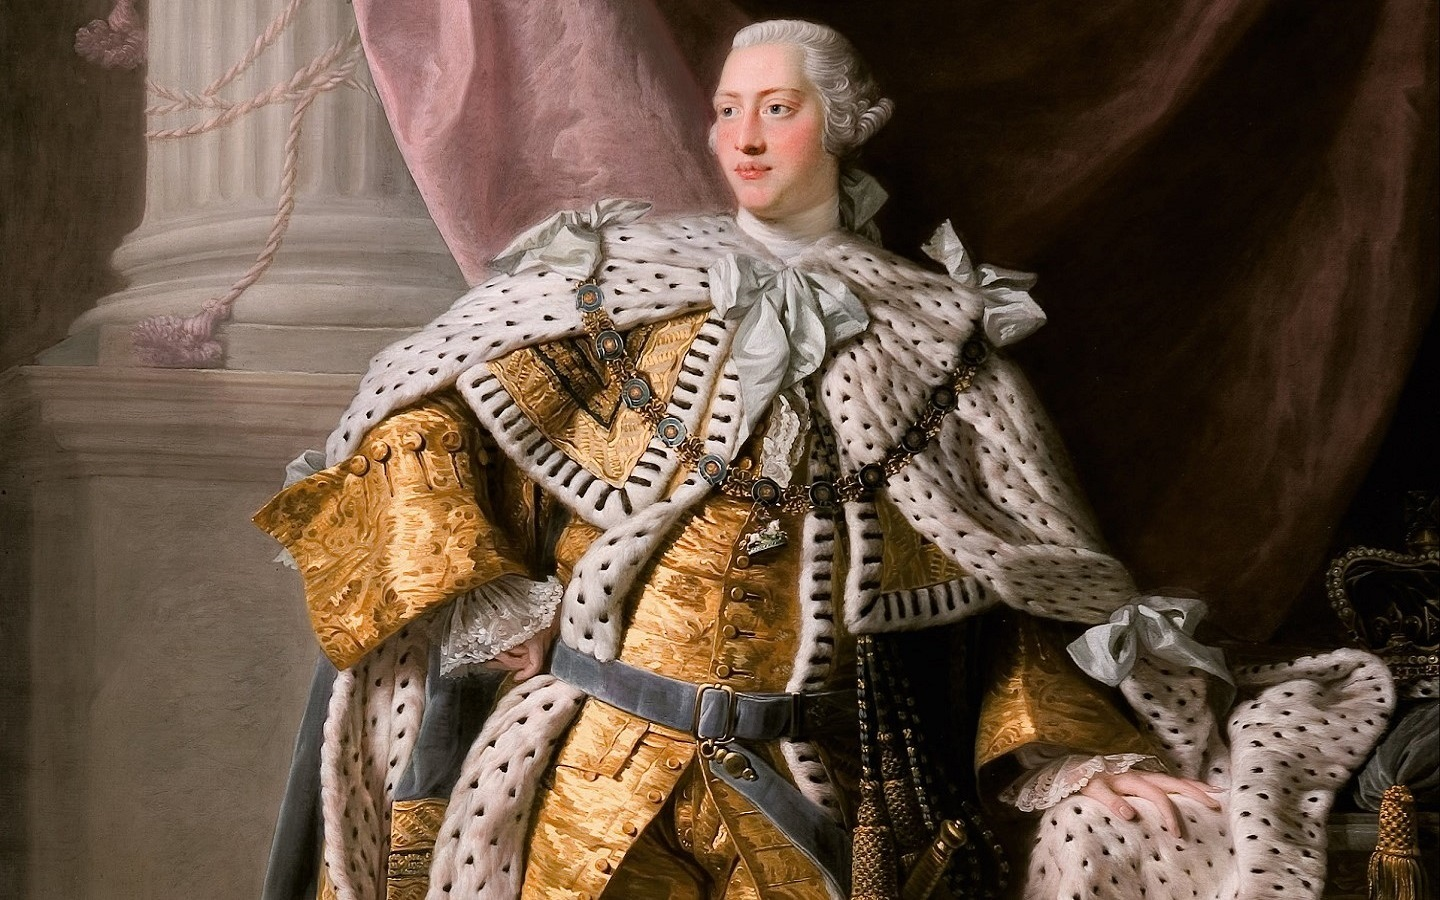 king george iii tyranny It was on this day in 1761 that their majesties king george iii and queen charlotte of the here we come to some real tyranny the king was trying to.